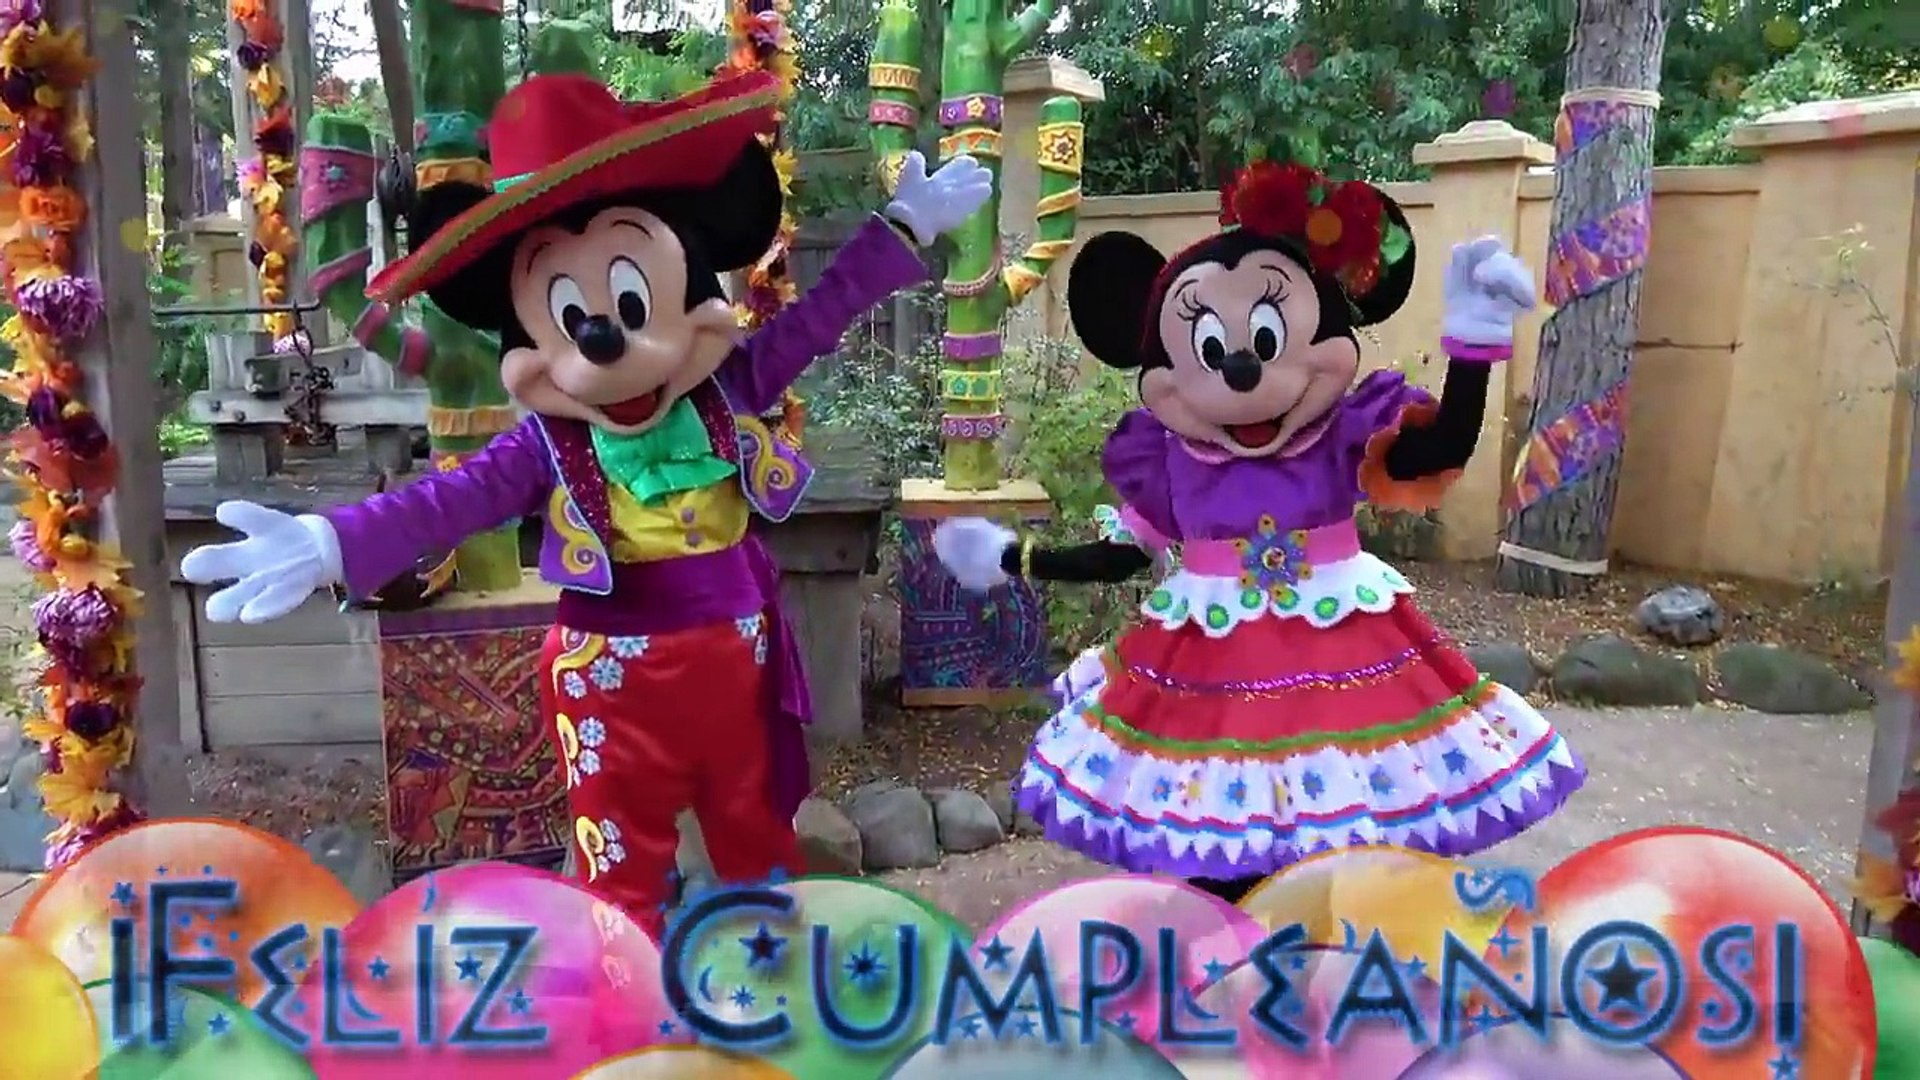 Feliz Cumpleaños Mickey Y Minnie Mouse Canciones De Felicitaciones Video Dailymotion